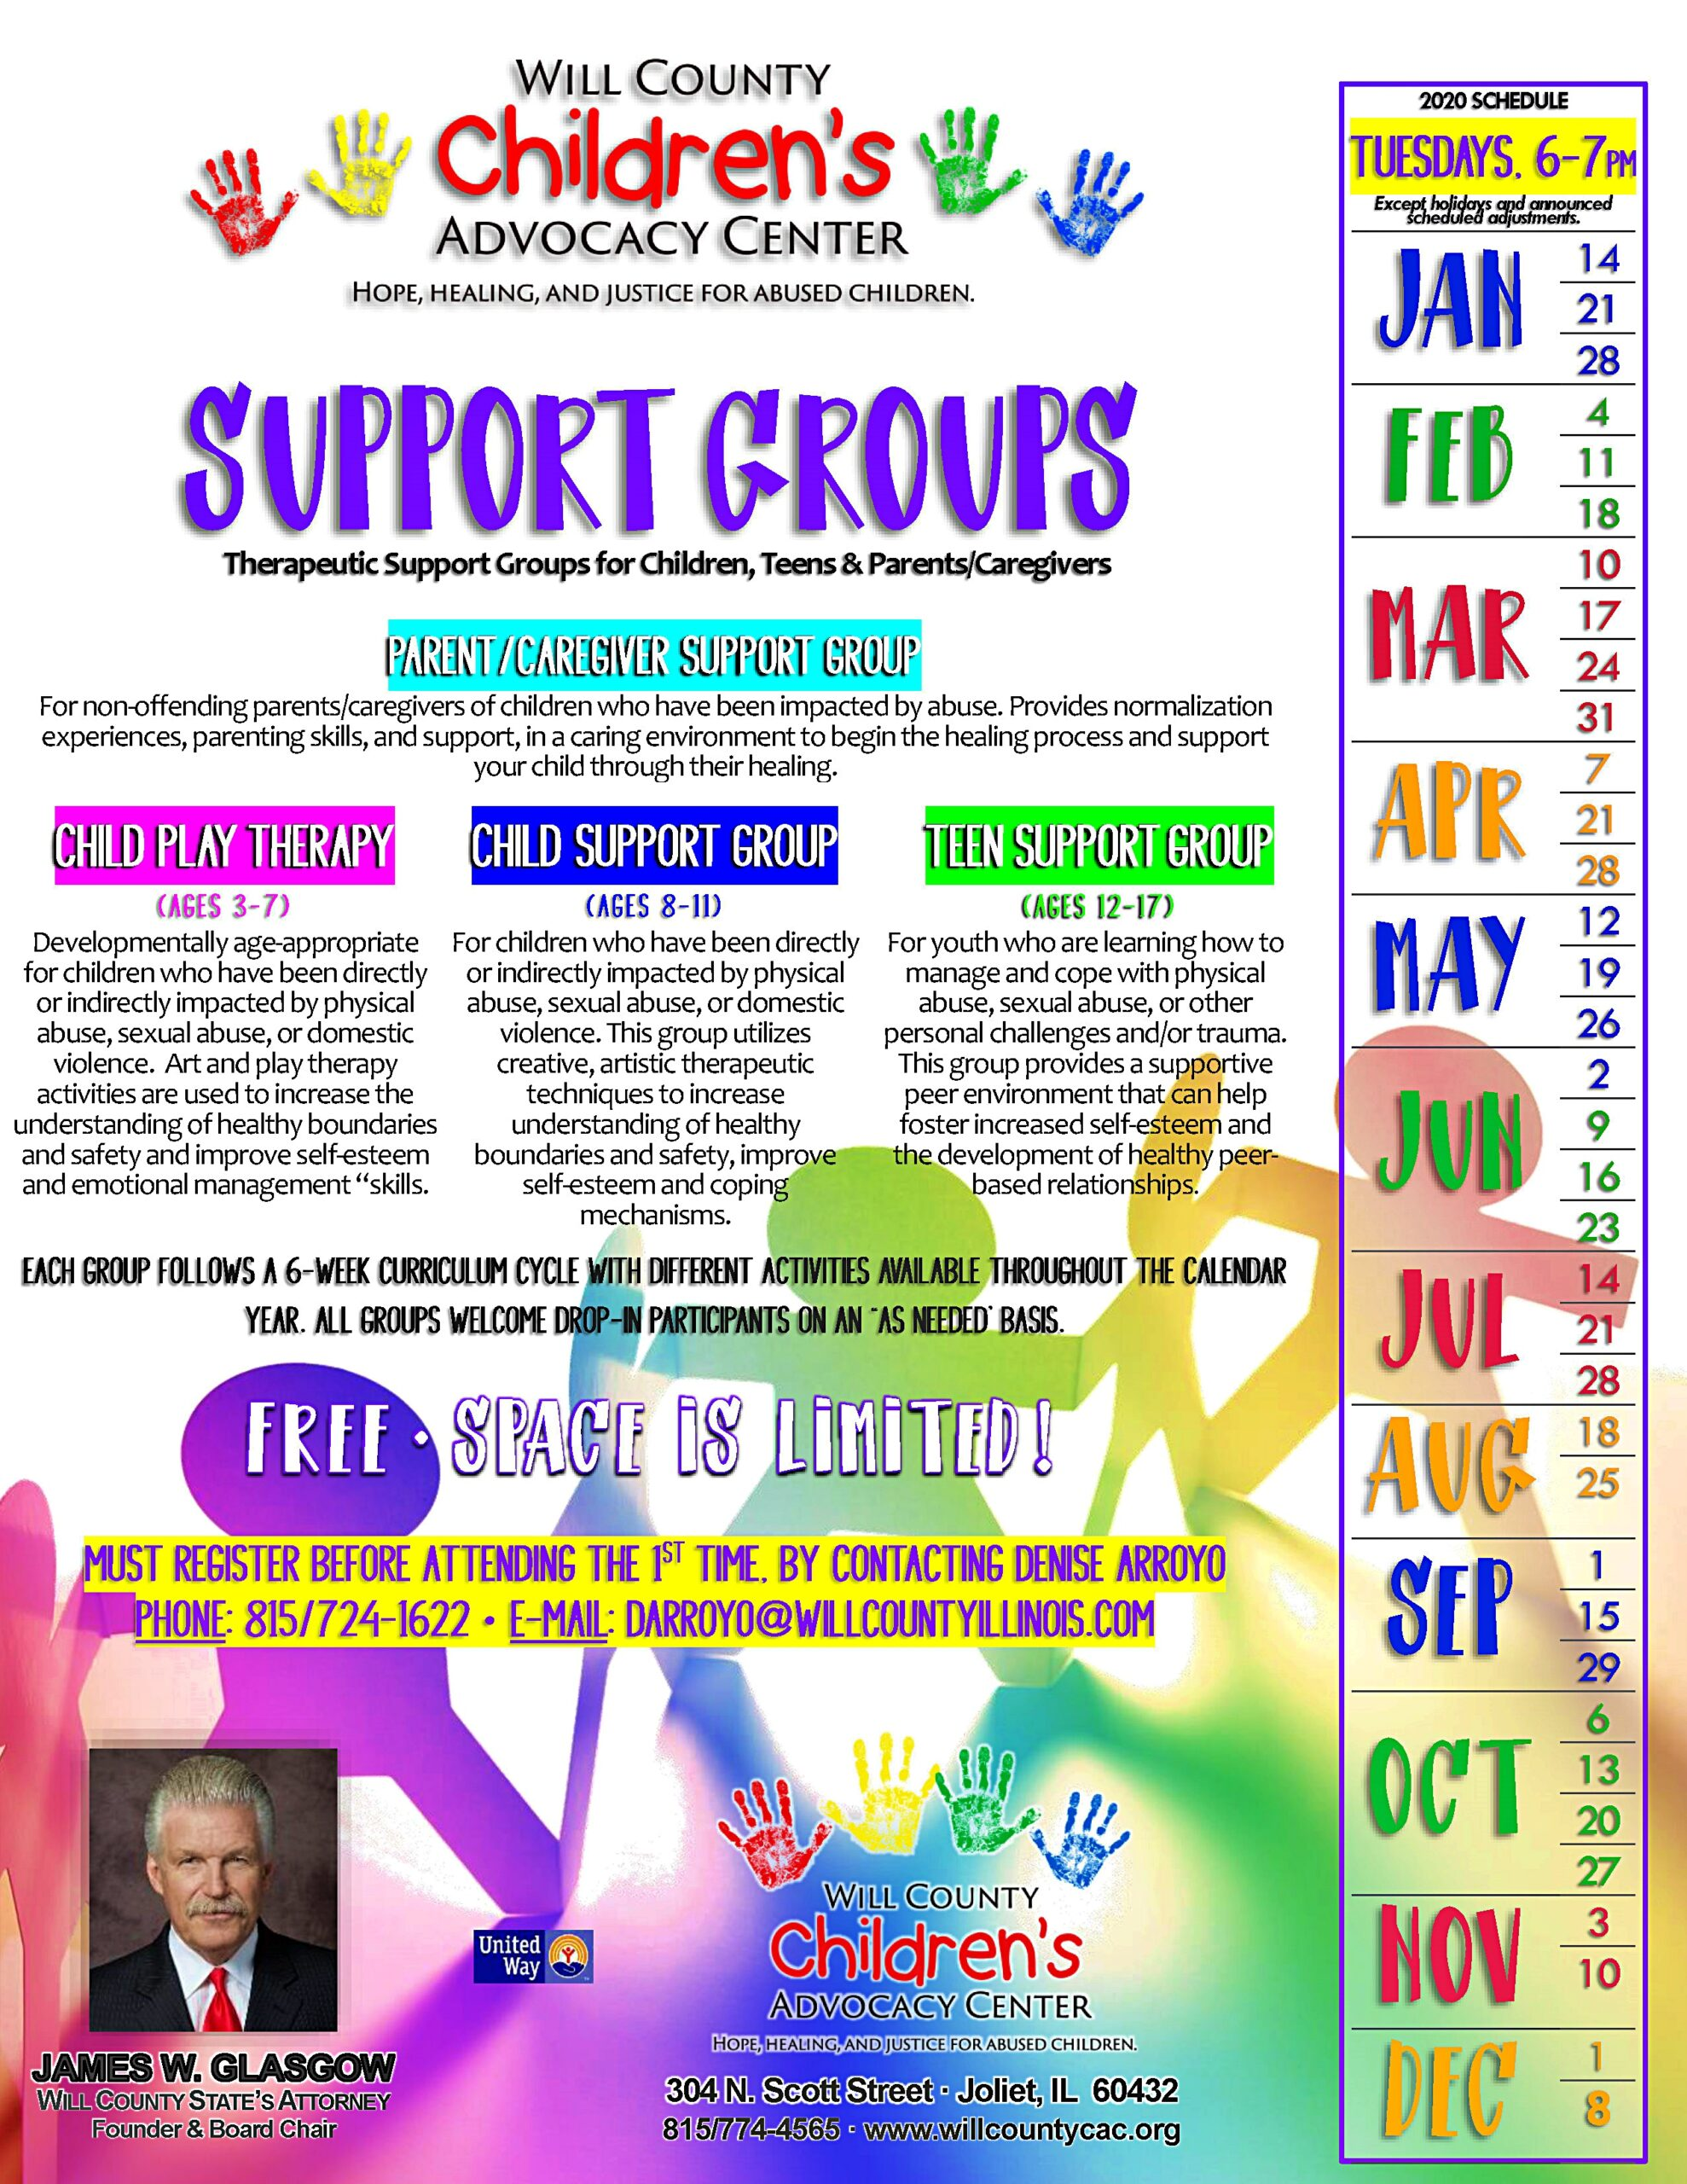 Will County Children's Advocacy Center - Therapeutic Support Groups - 2020 Schedule